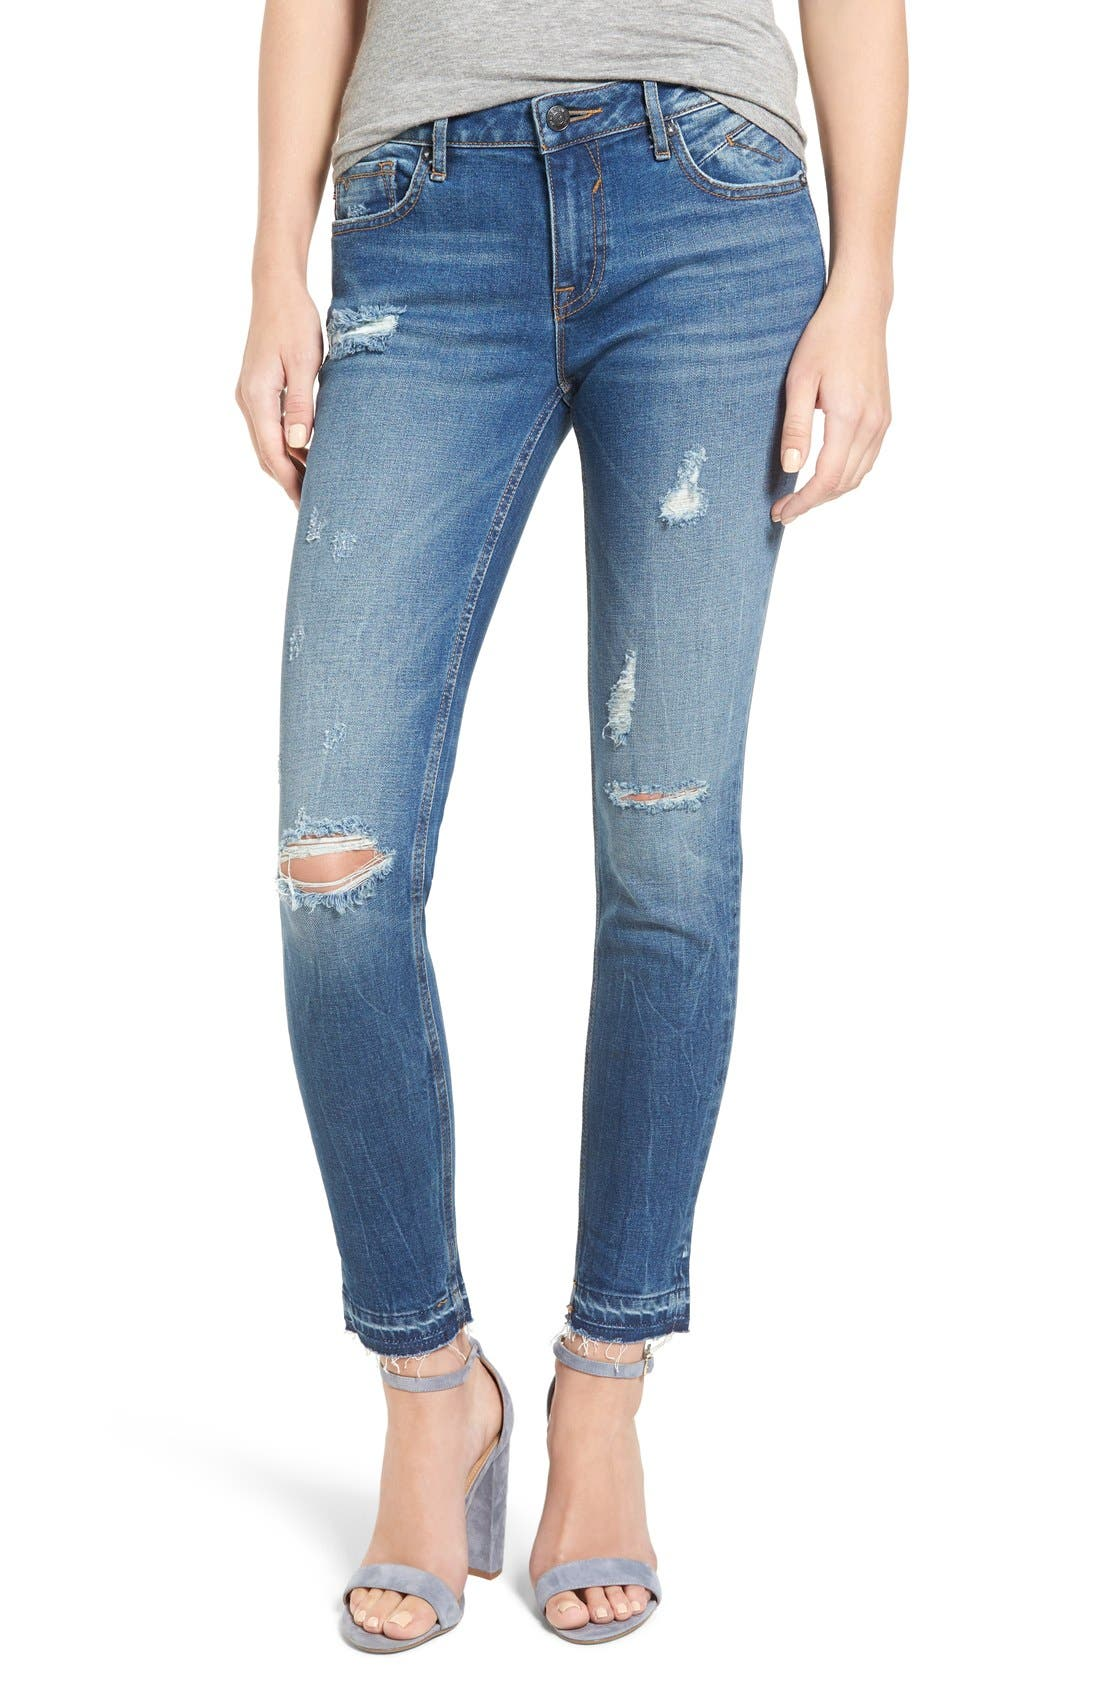 Alternate Image 1 Selected - Vigoss 'Chelsea' Distressed Raw Hem Skinny Jeans